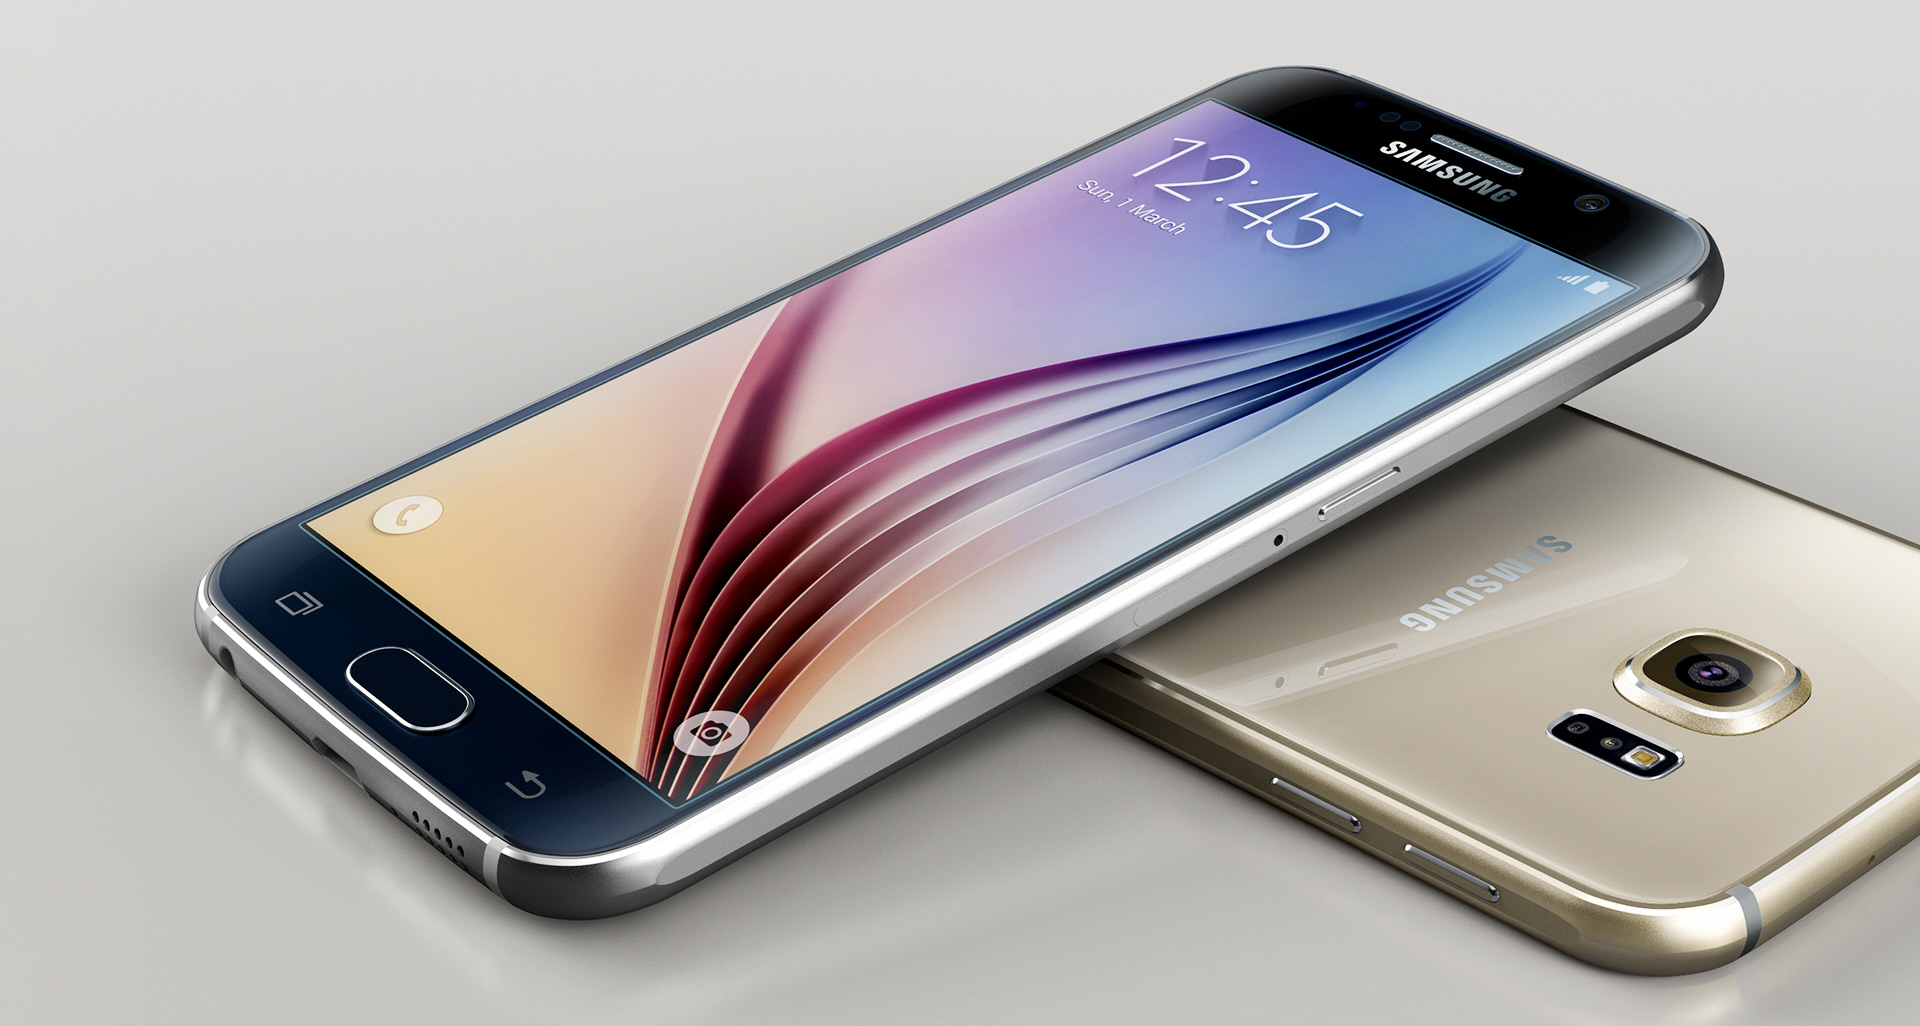 All Ready to Set New Trends: Samsung Galaxy S6